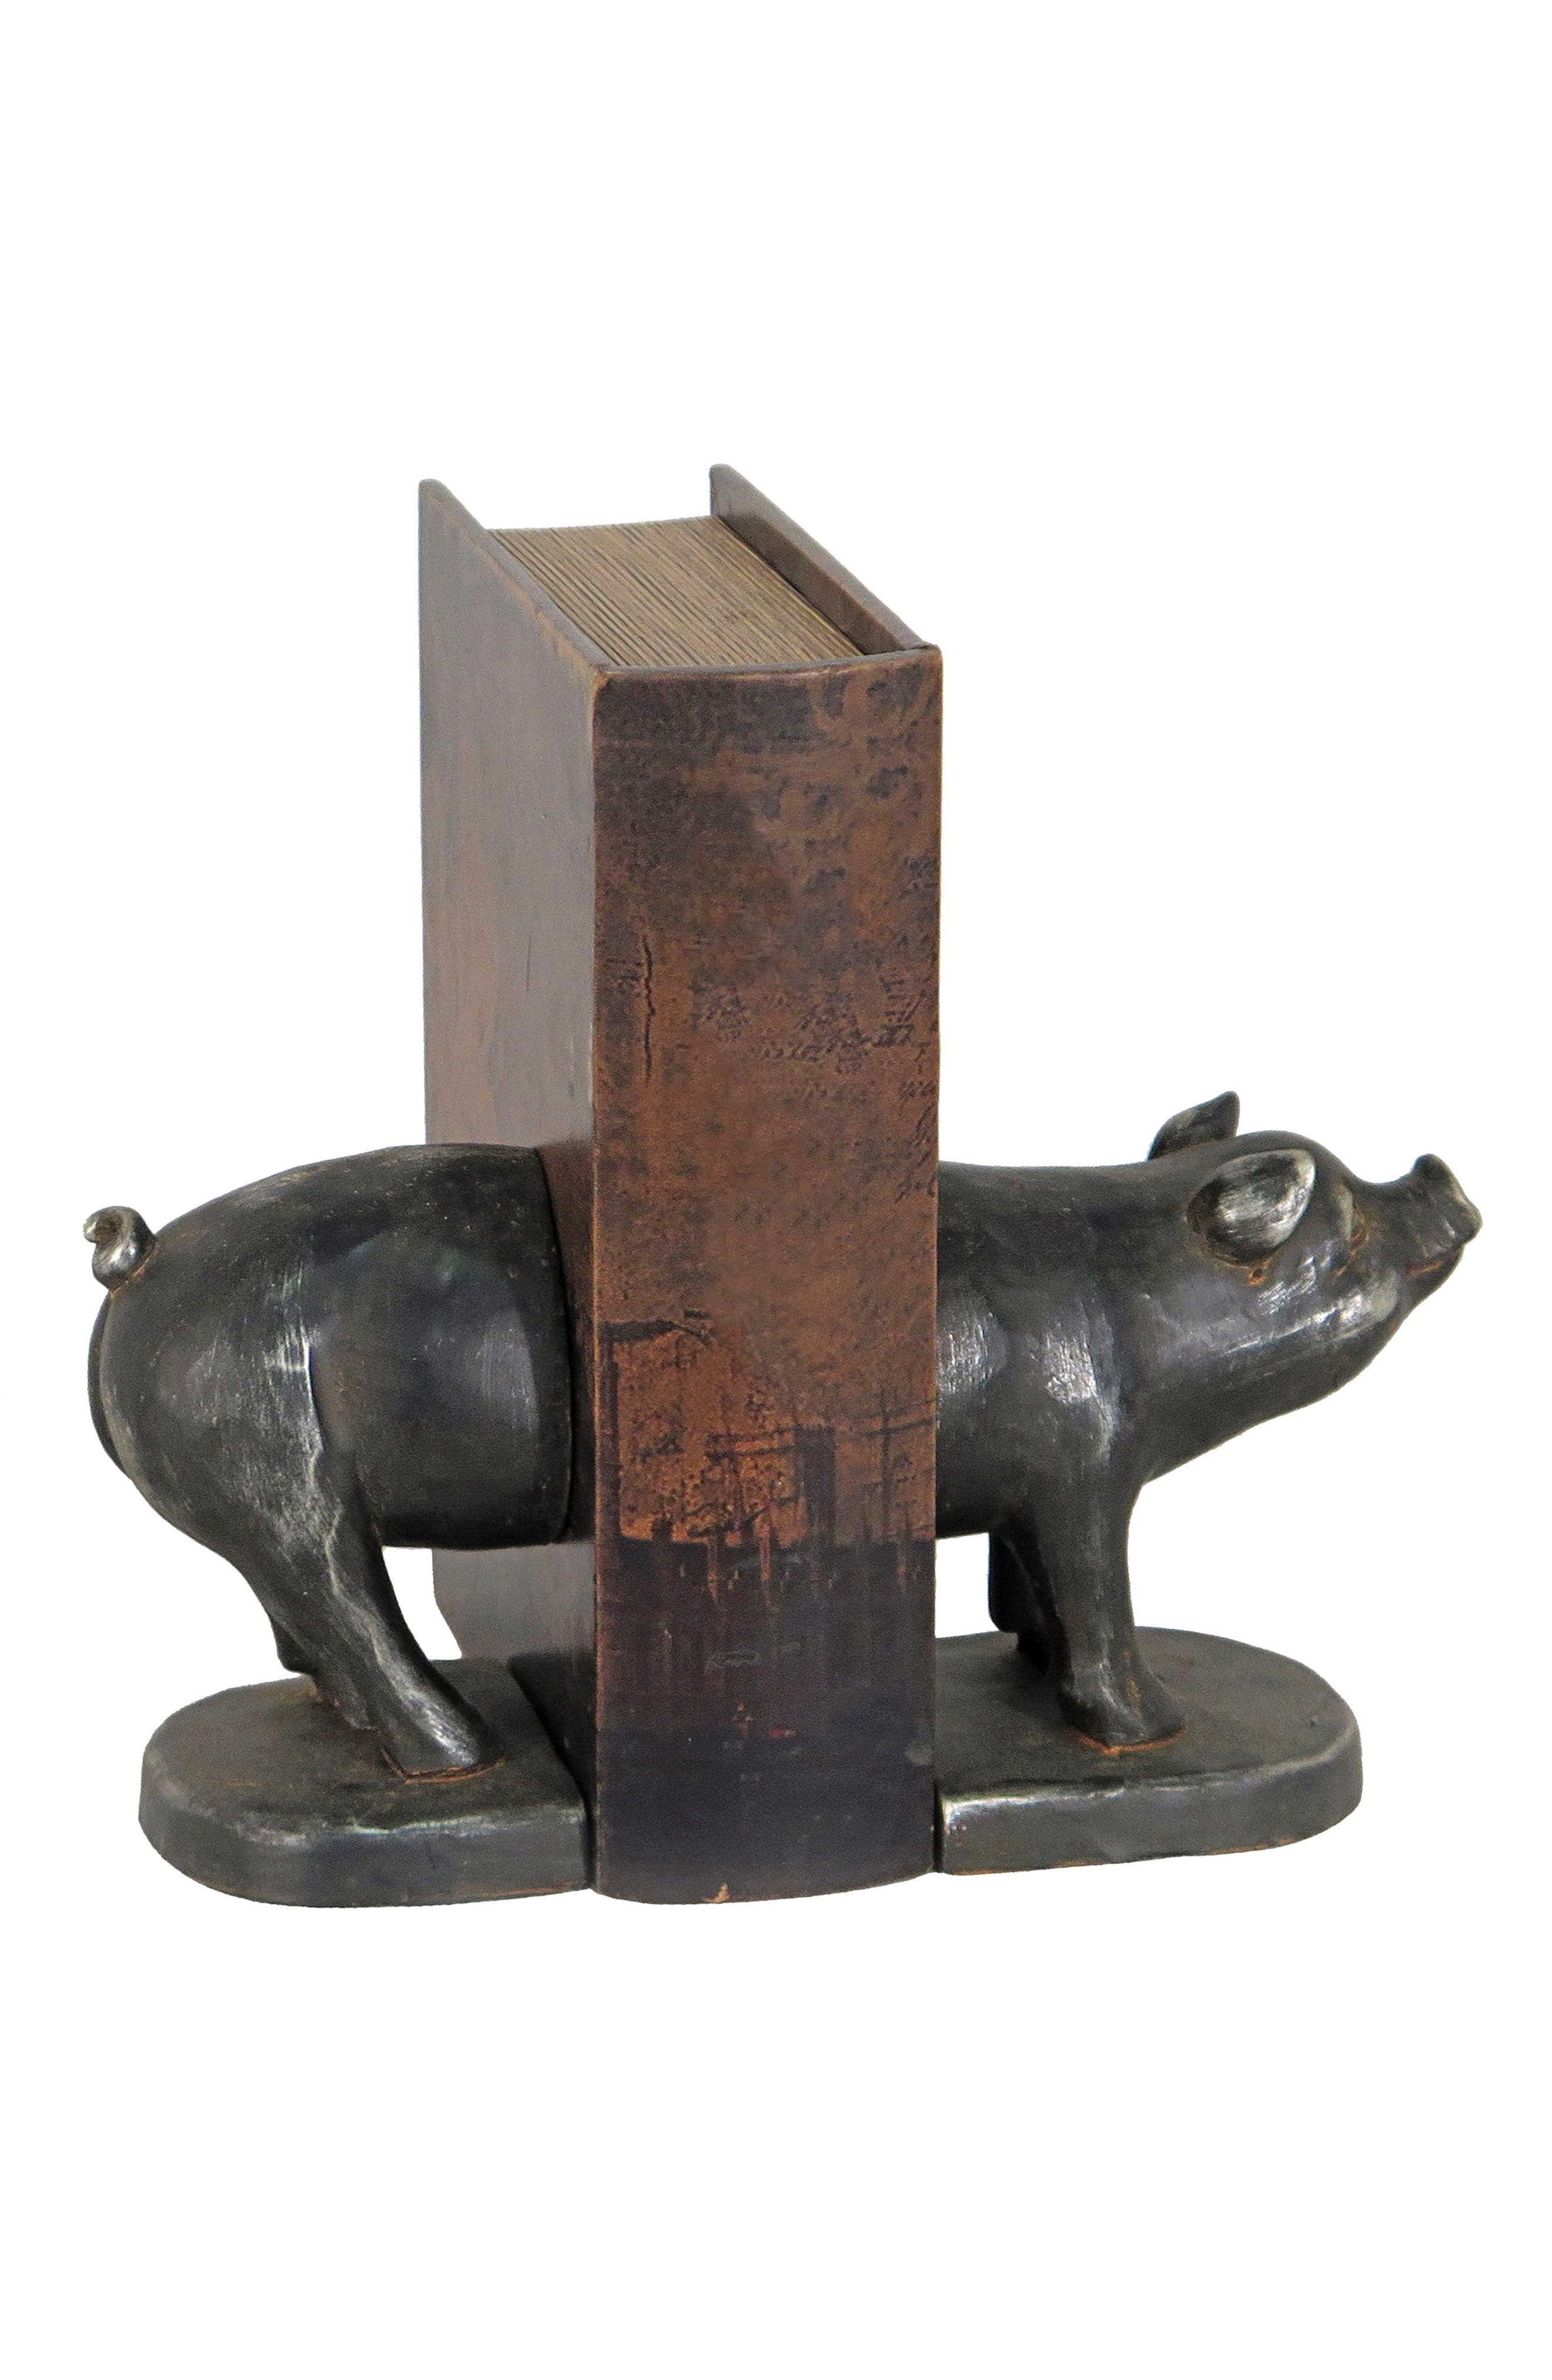 Piglet Set of 2 Bookends,                             Main thumbnail 1, color,                             200